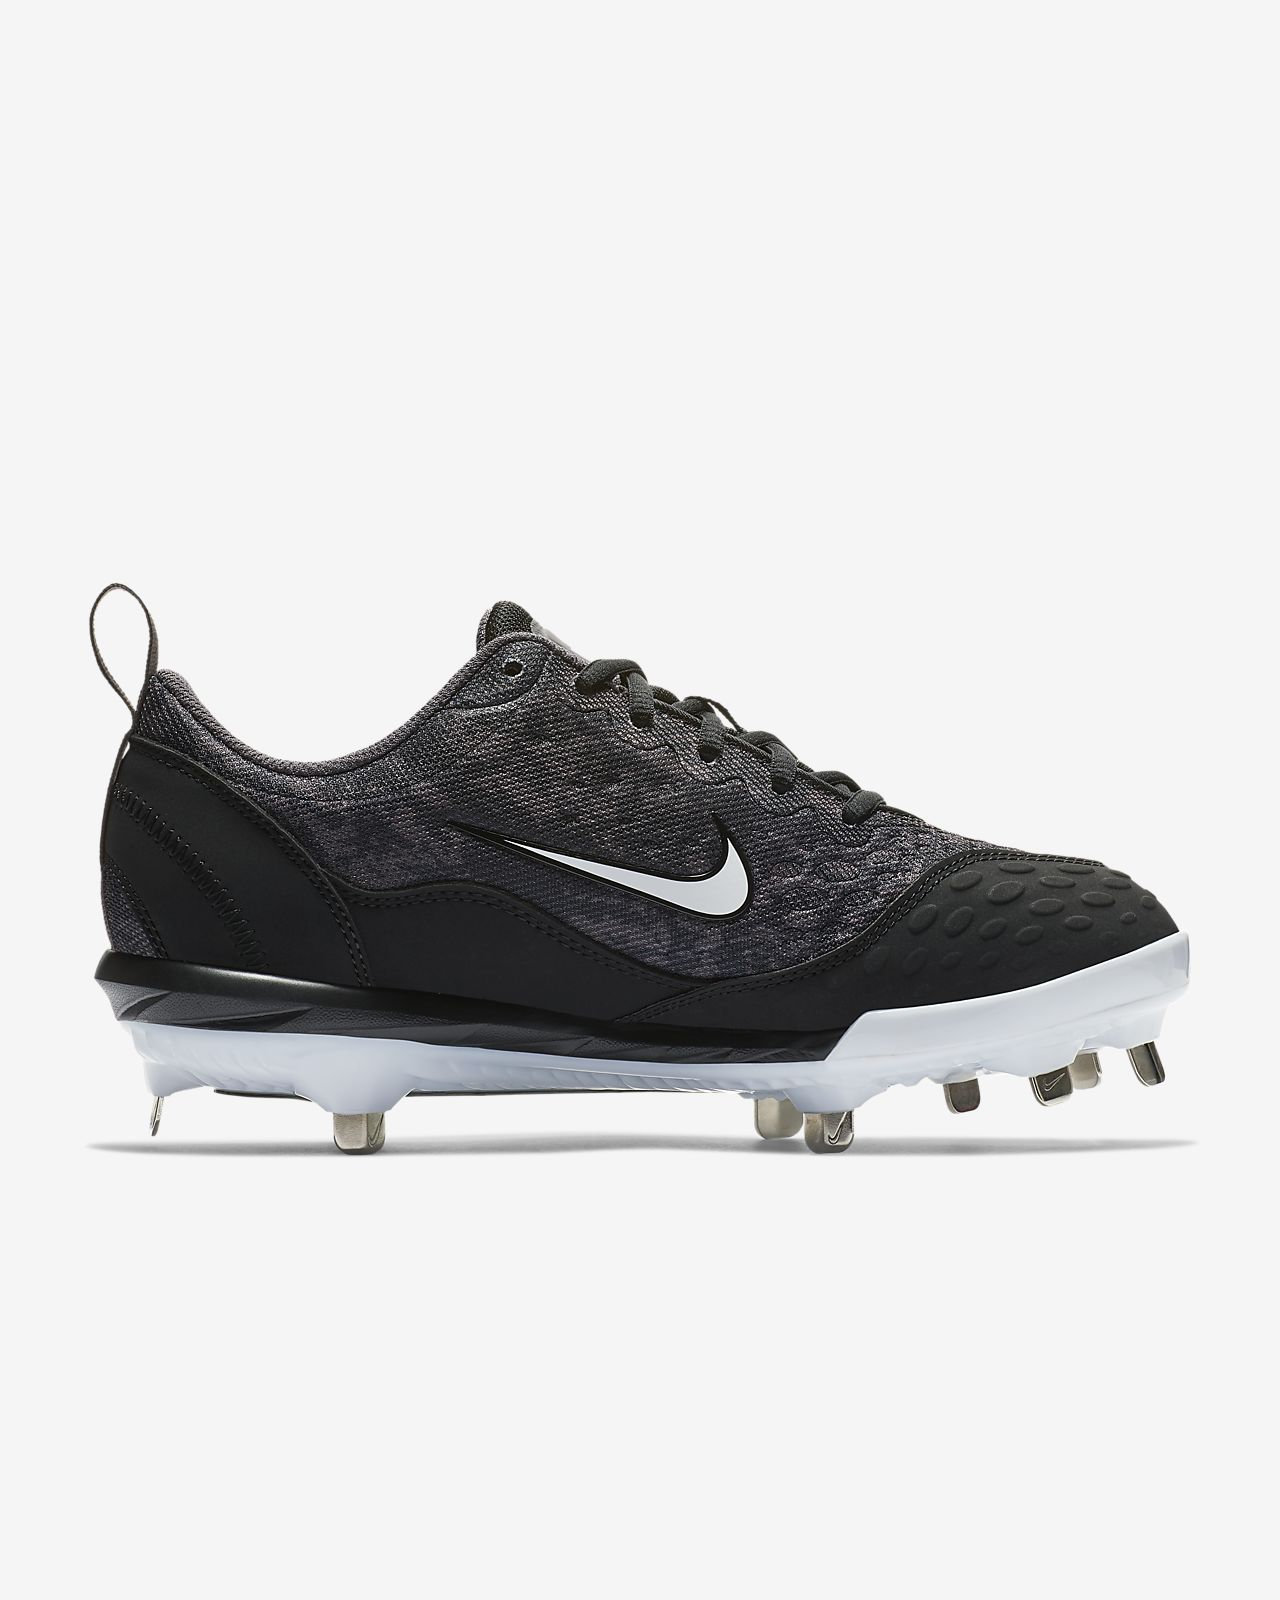 5cc1b9543 Nike Lunar Hyperdiamond 2 Pro Women s Softball Cleat. Nike.com